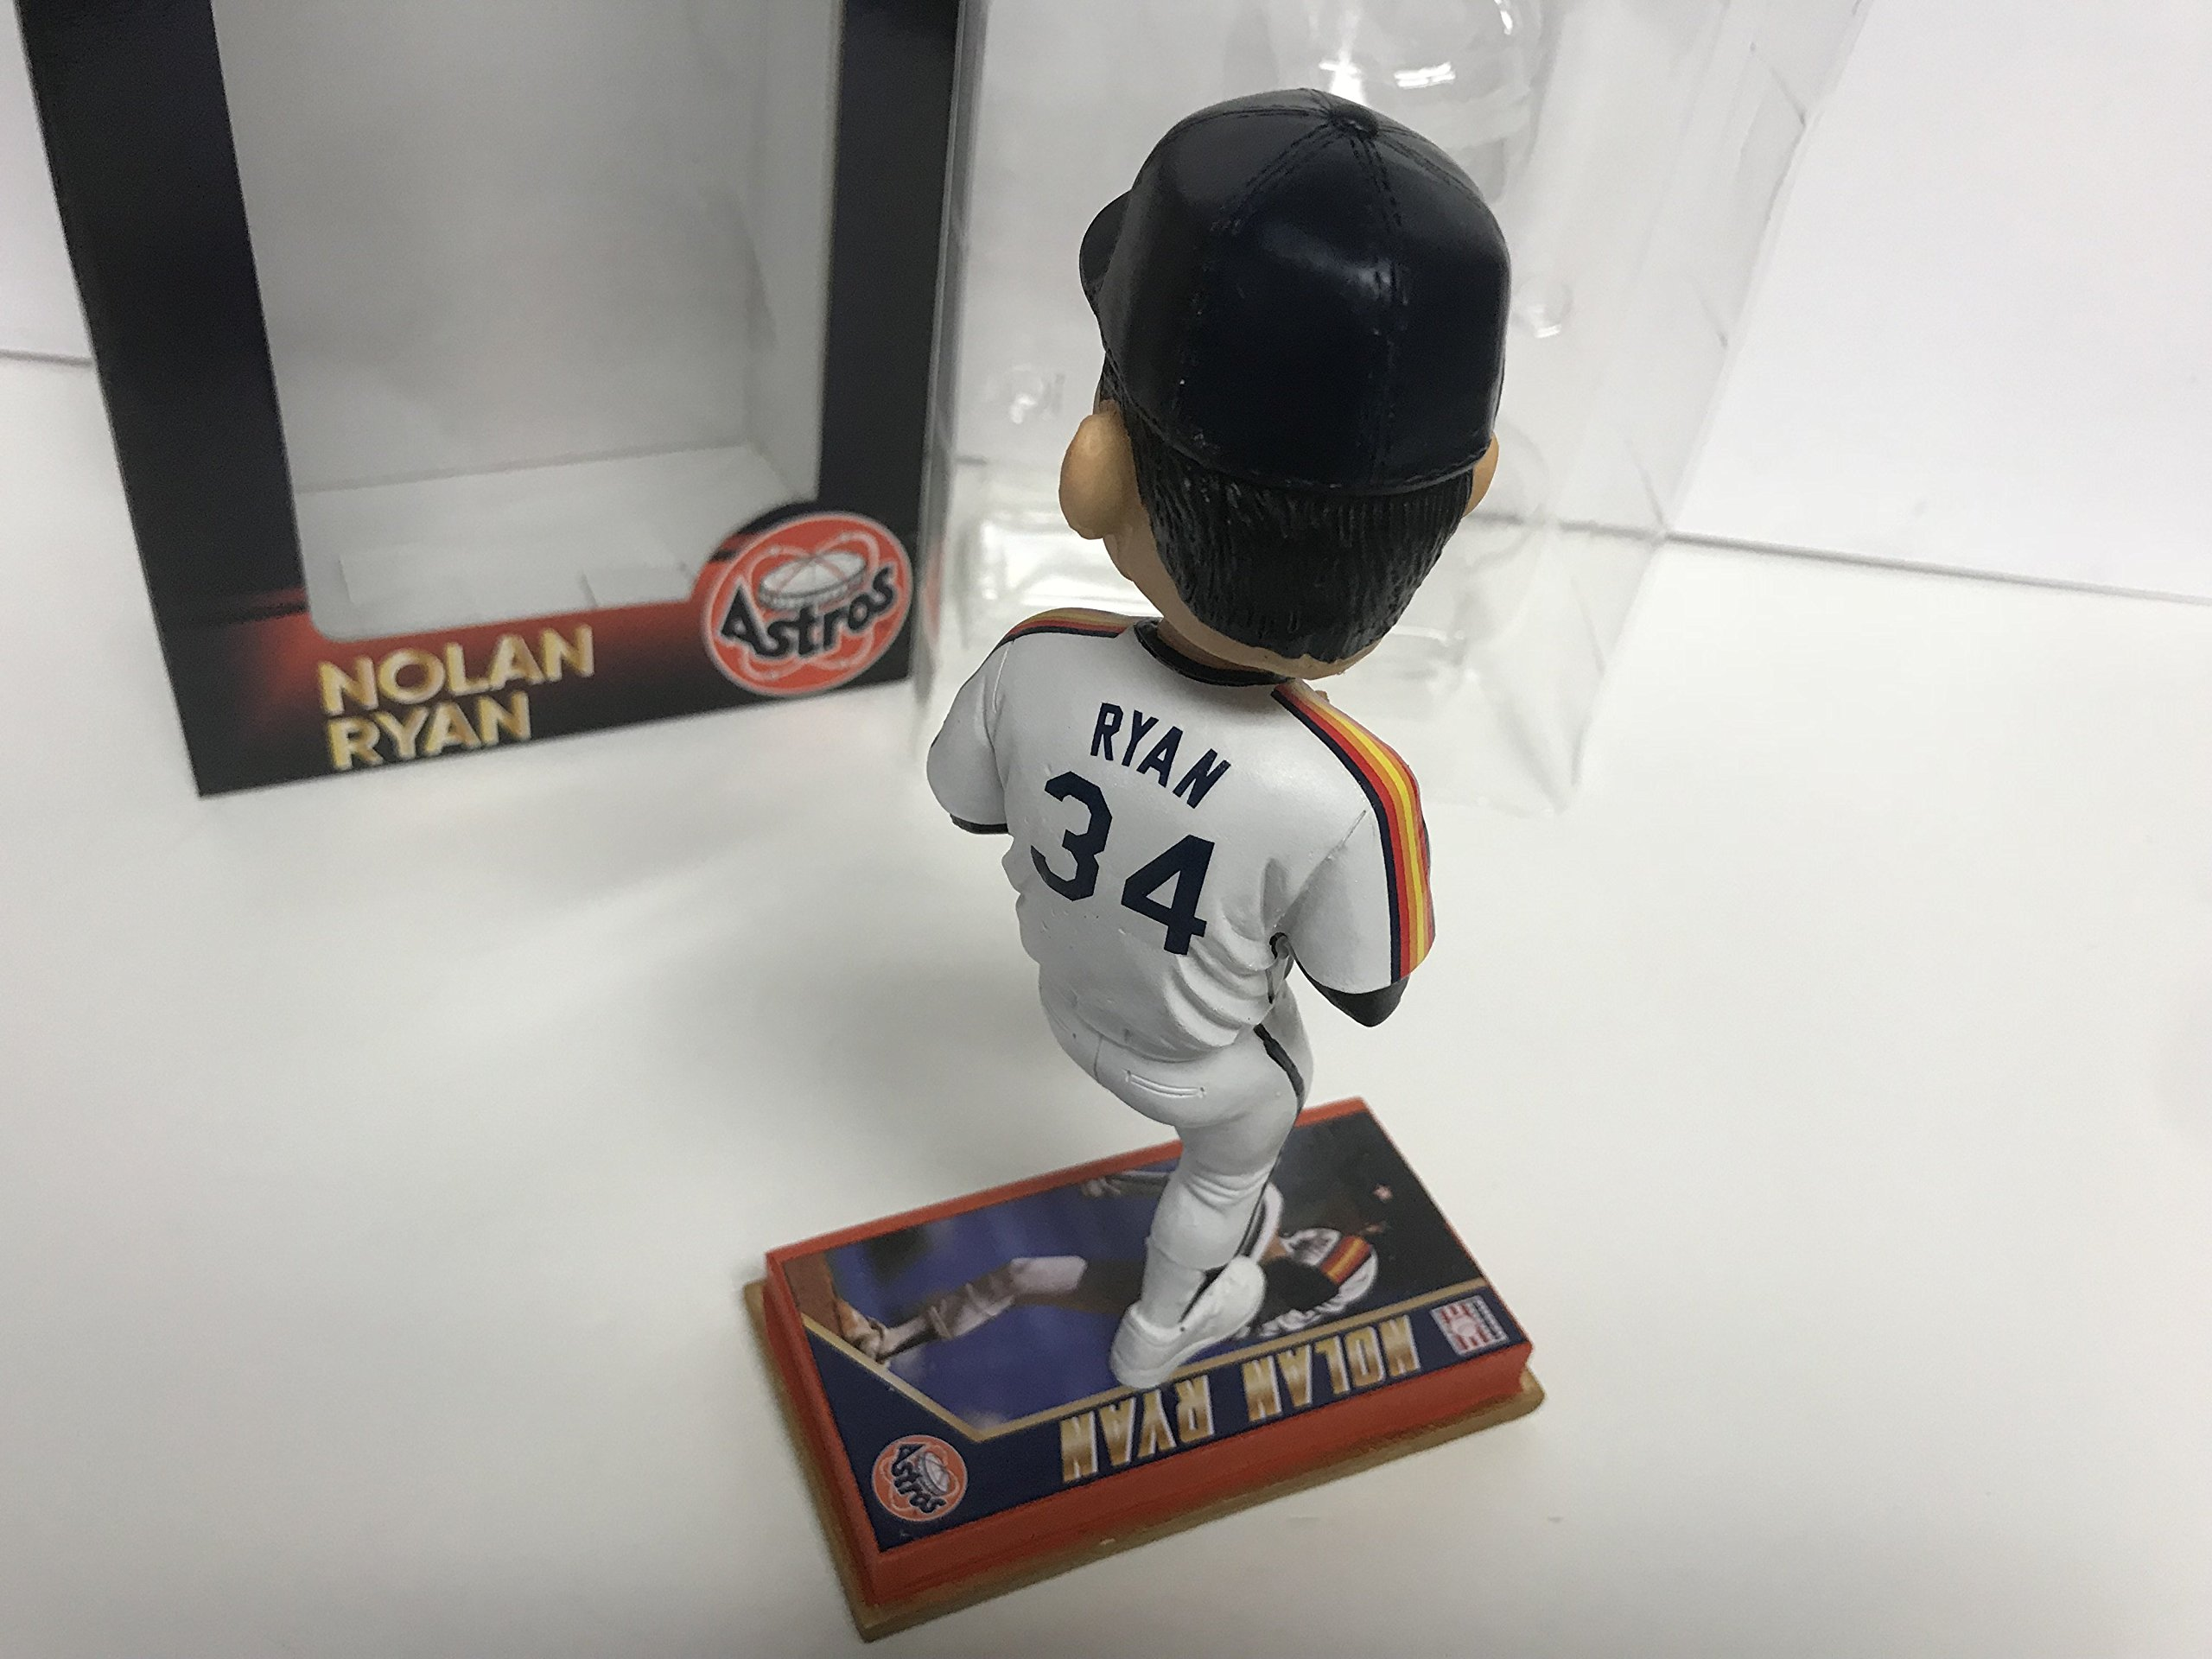 Nolan Ryan Houston Astros HALL of FAME Legend Limited Edition Bobblehead